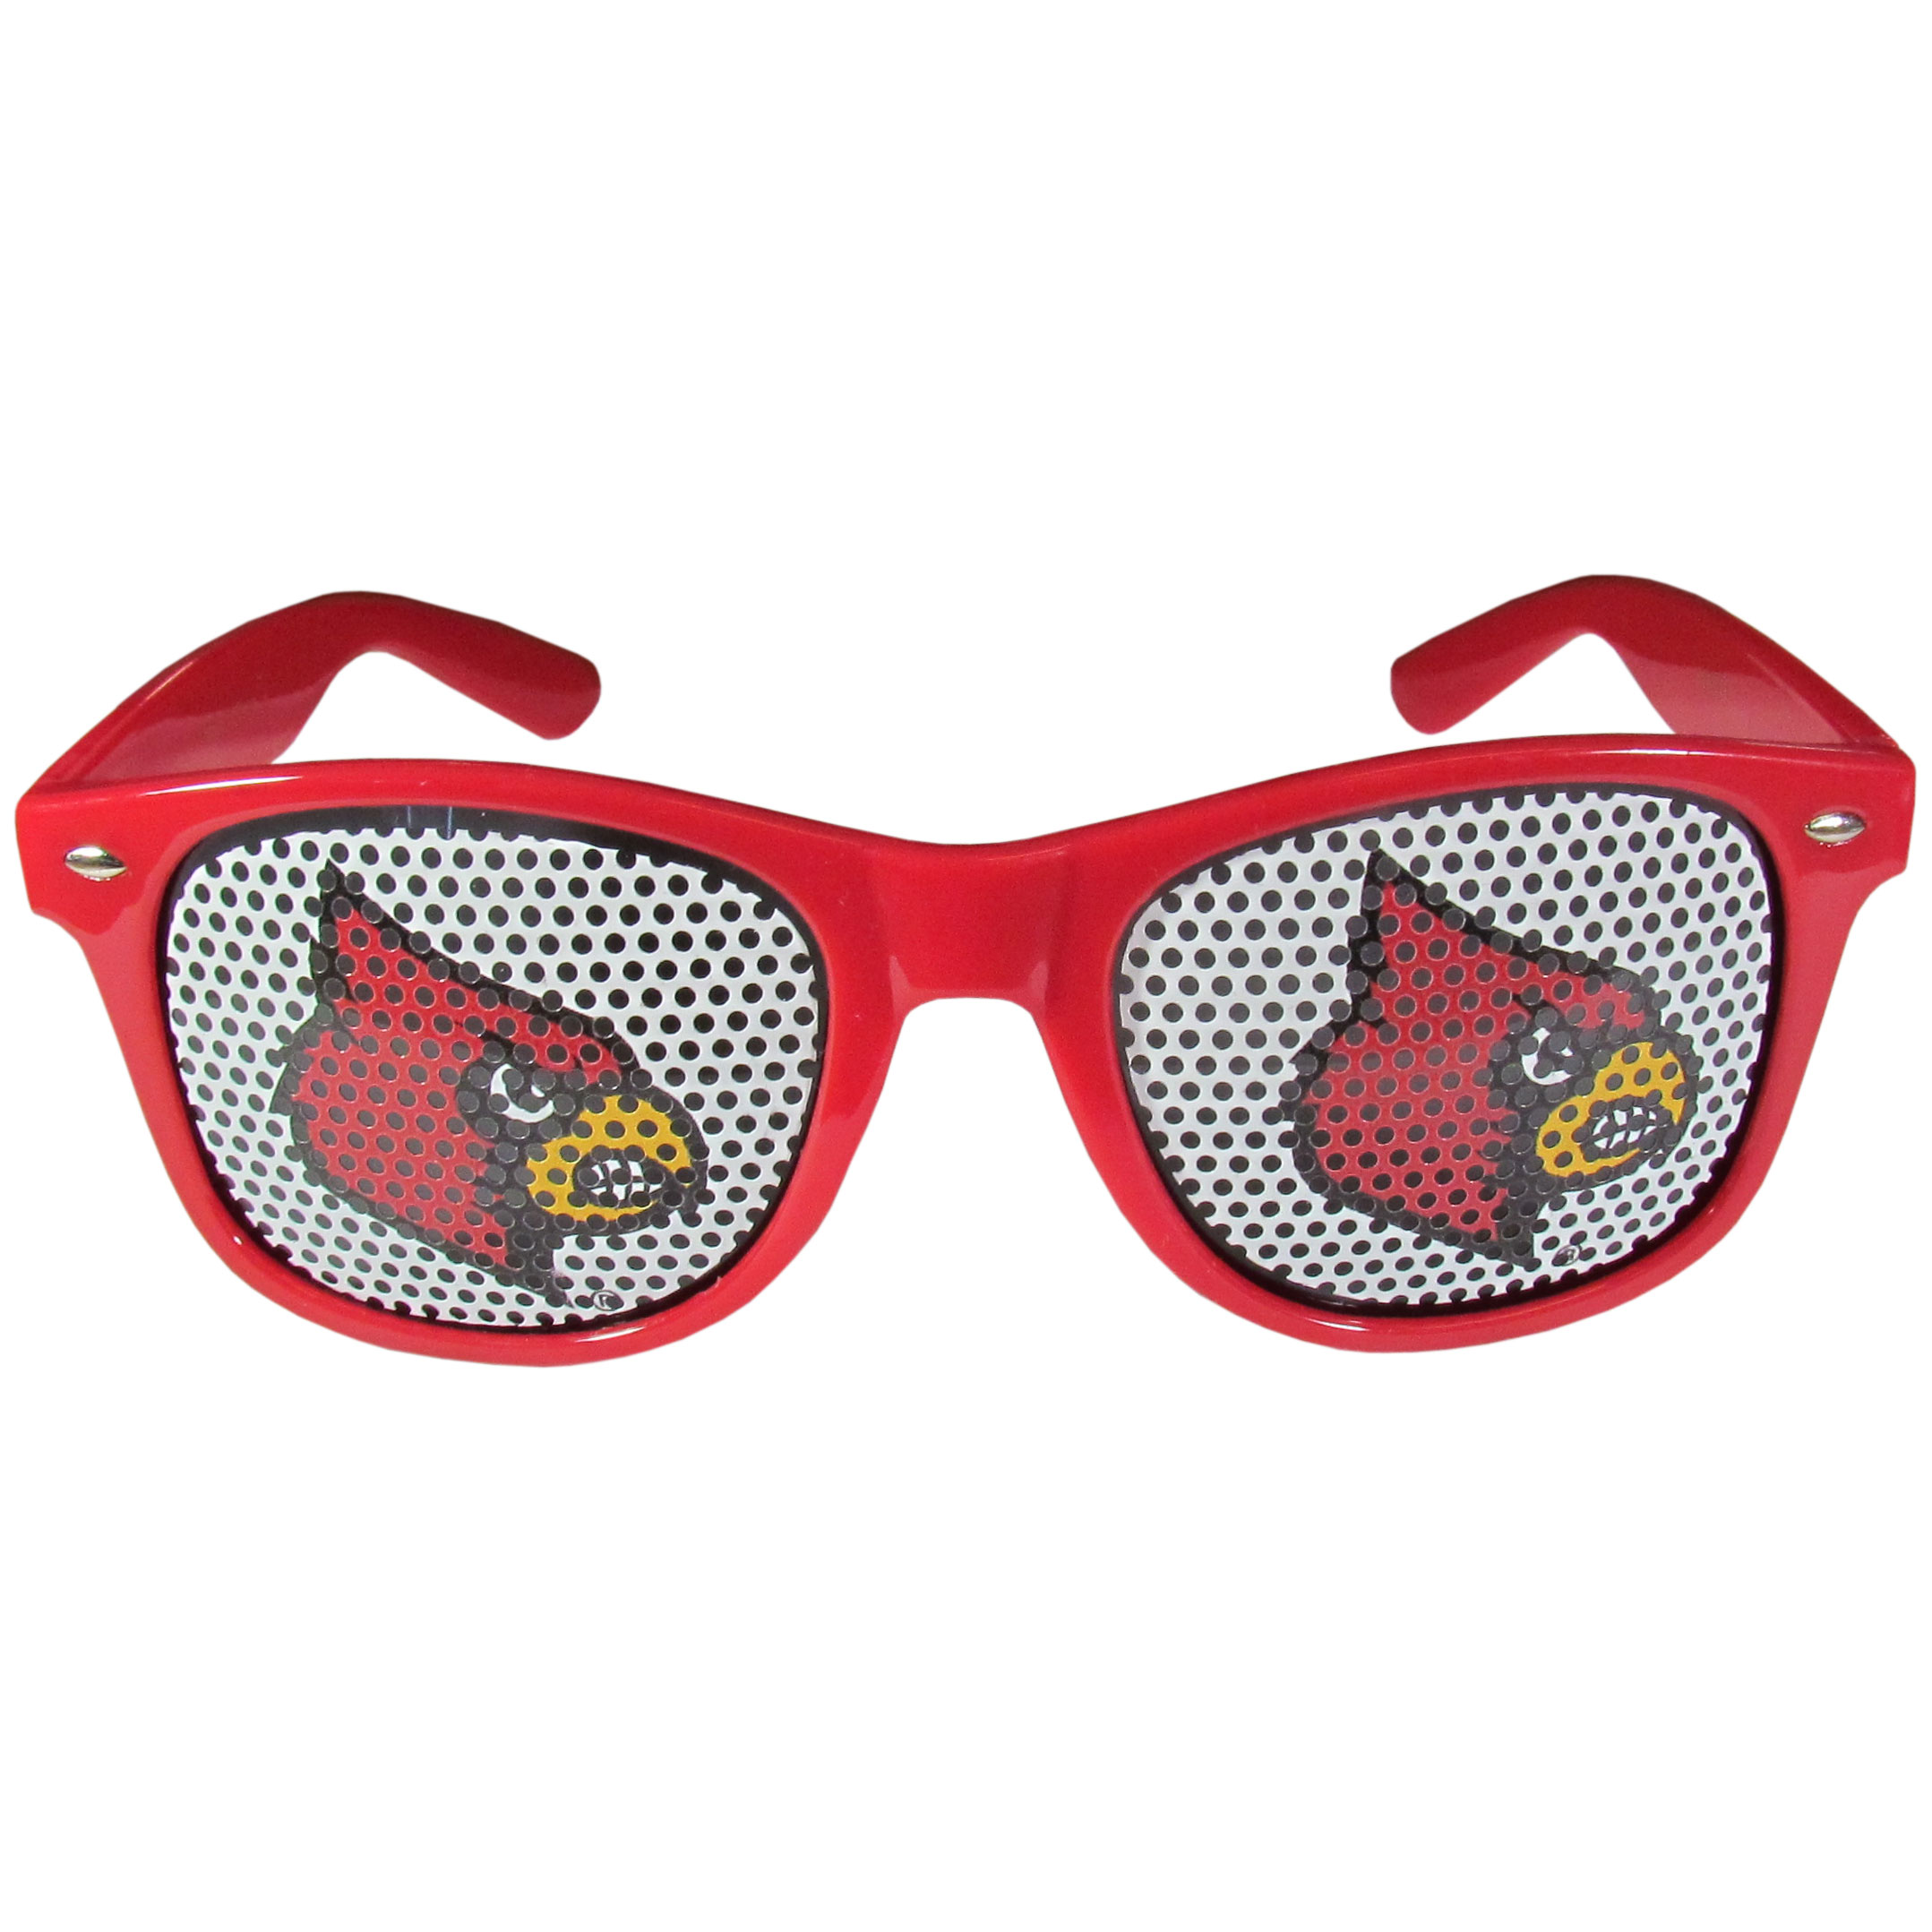 Louisville Cardinals Game Day Shades - Our officially licensed game day shades are the perfect accessory for the devoted Louisville Cardinals fan! The sunglasses have durable polycarbonate frames with flex hinges for comfort and damage resistance. The lenses feature brightly colored team clings that are perforated for visibility.